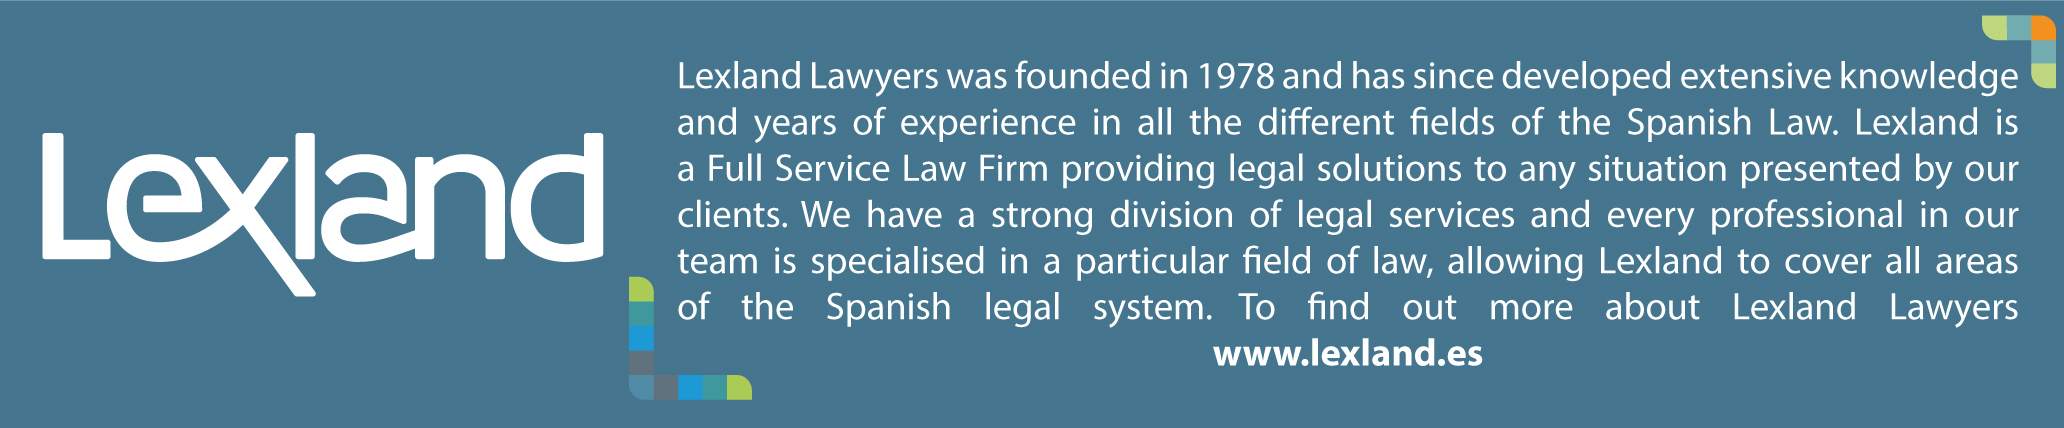 A research on the legal system of spain